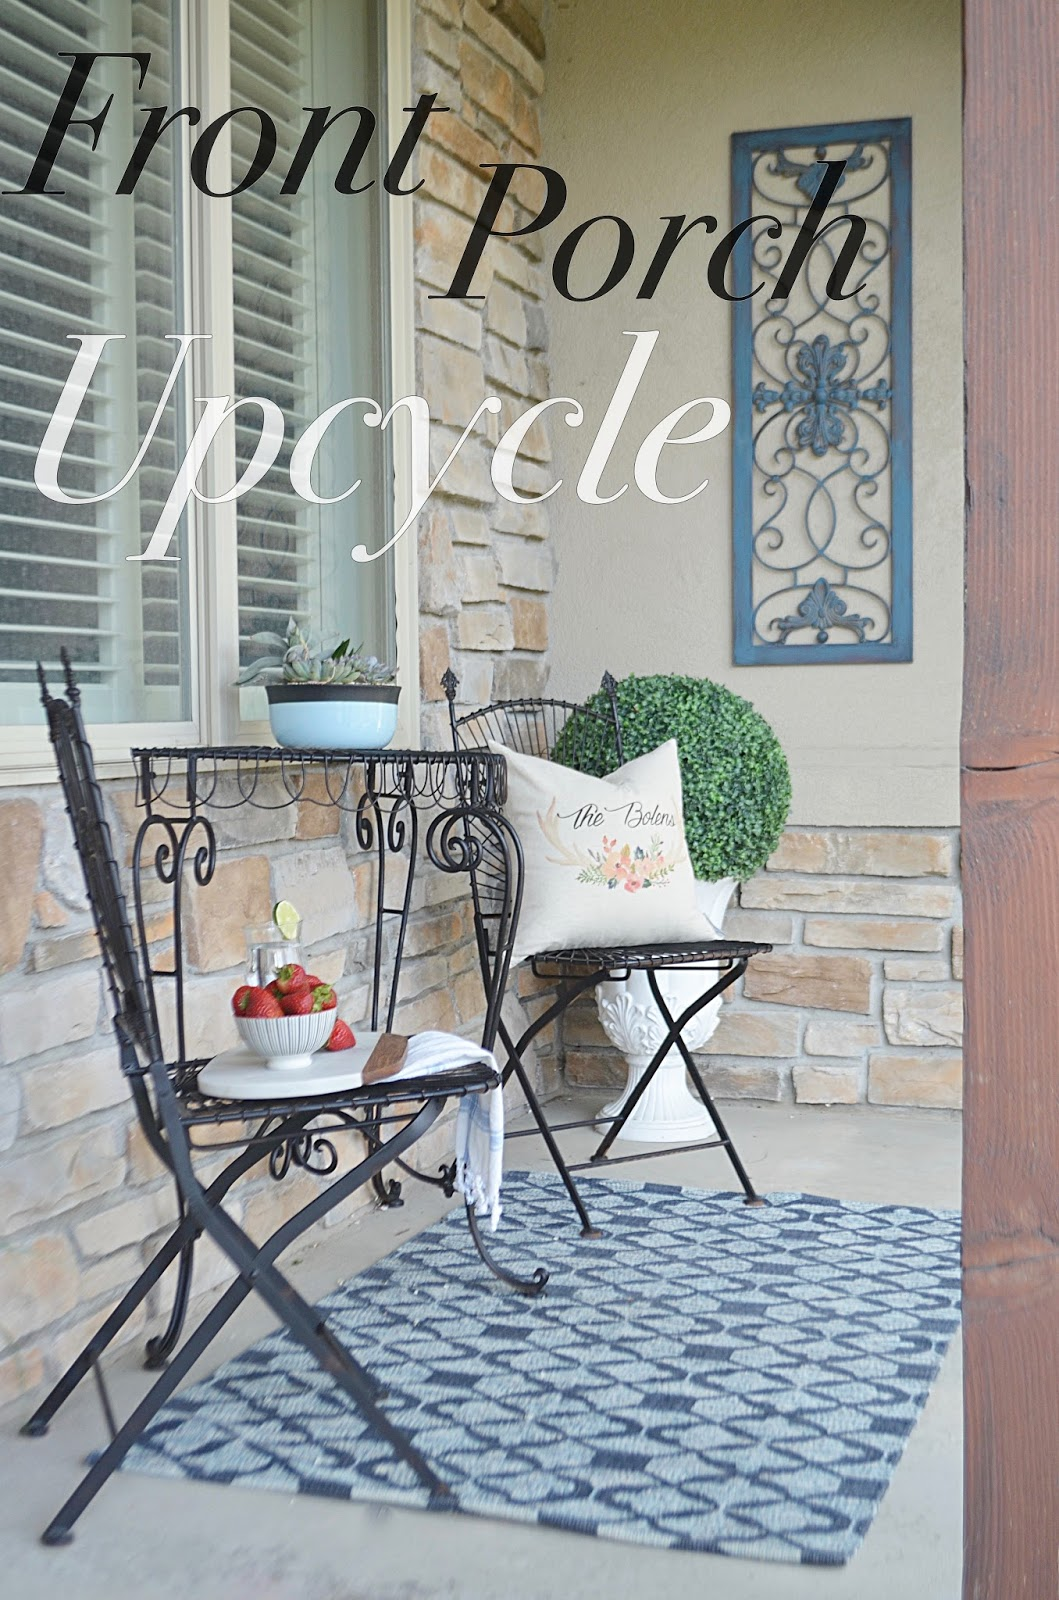 upcycle, patio, patio furniture, outdoor decor